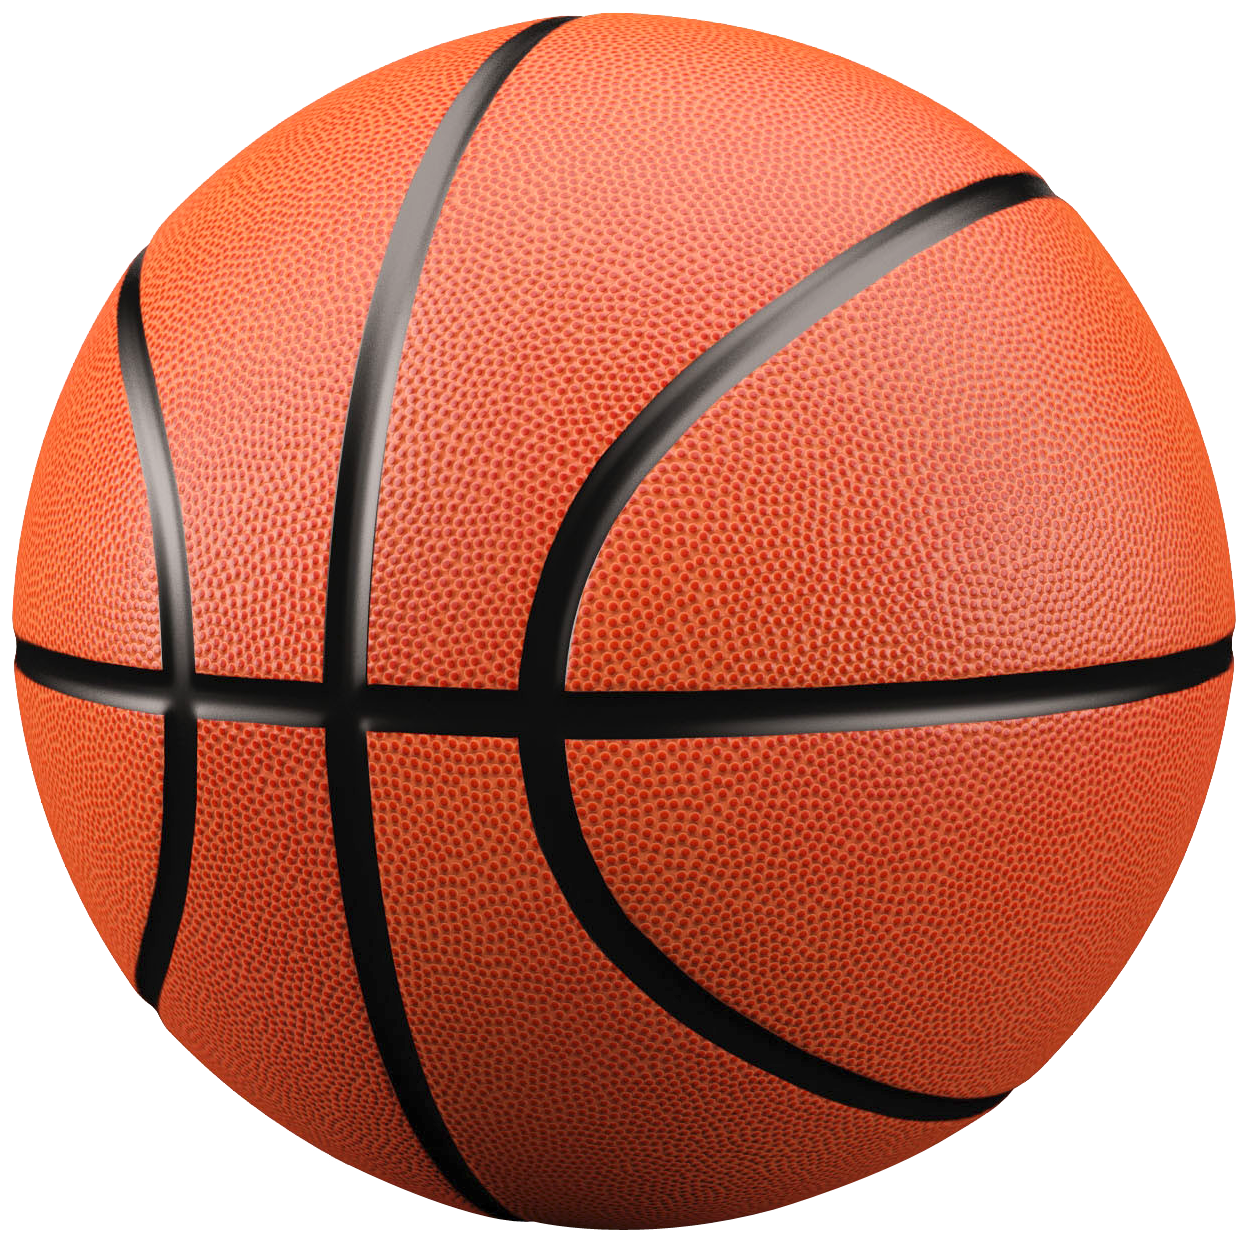 Basketball Png Hd PNG Image - Cricket Ball PNG HD